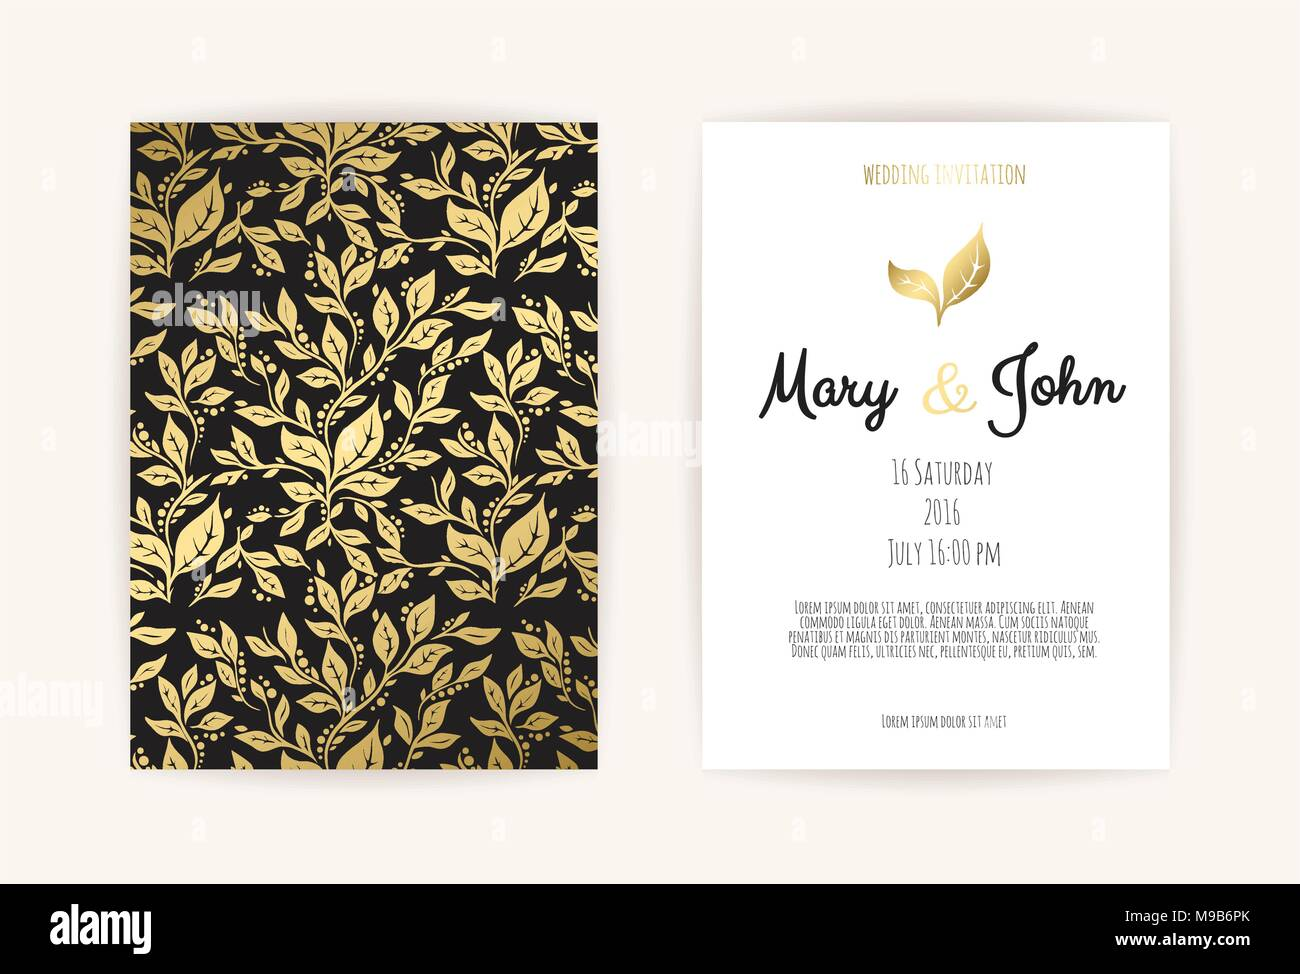 Vintage wedding invitation templates cover design with gold leaves vintage wedding invitation templates cover design with gold leaves ornaments vector traditional decorative backgrounds stopboris Choice Image